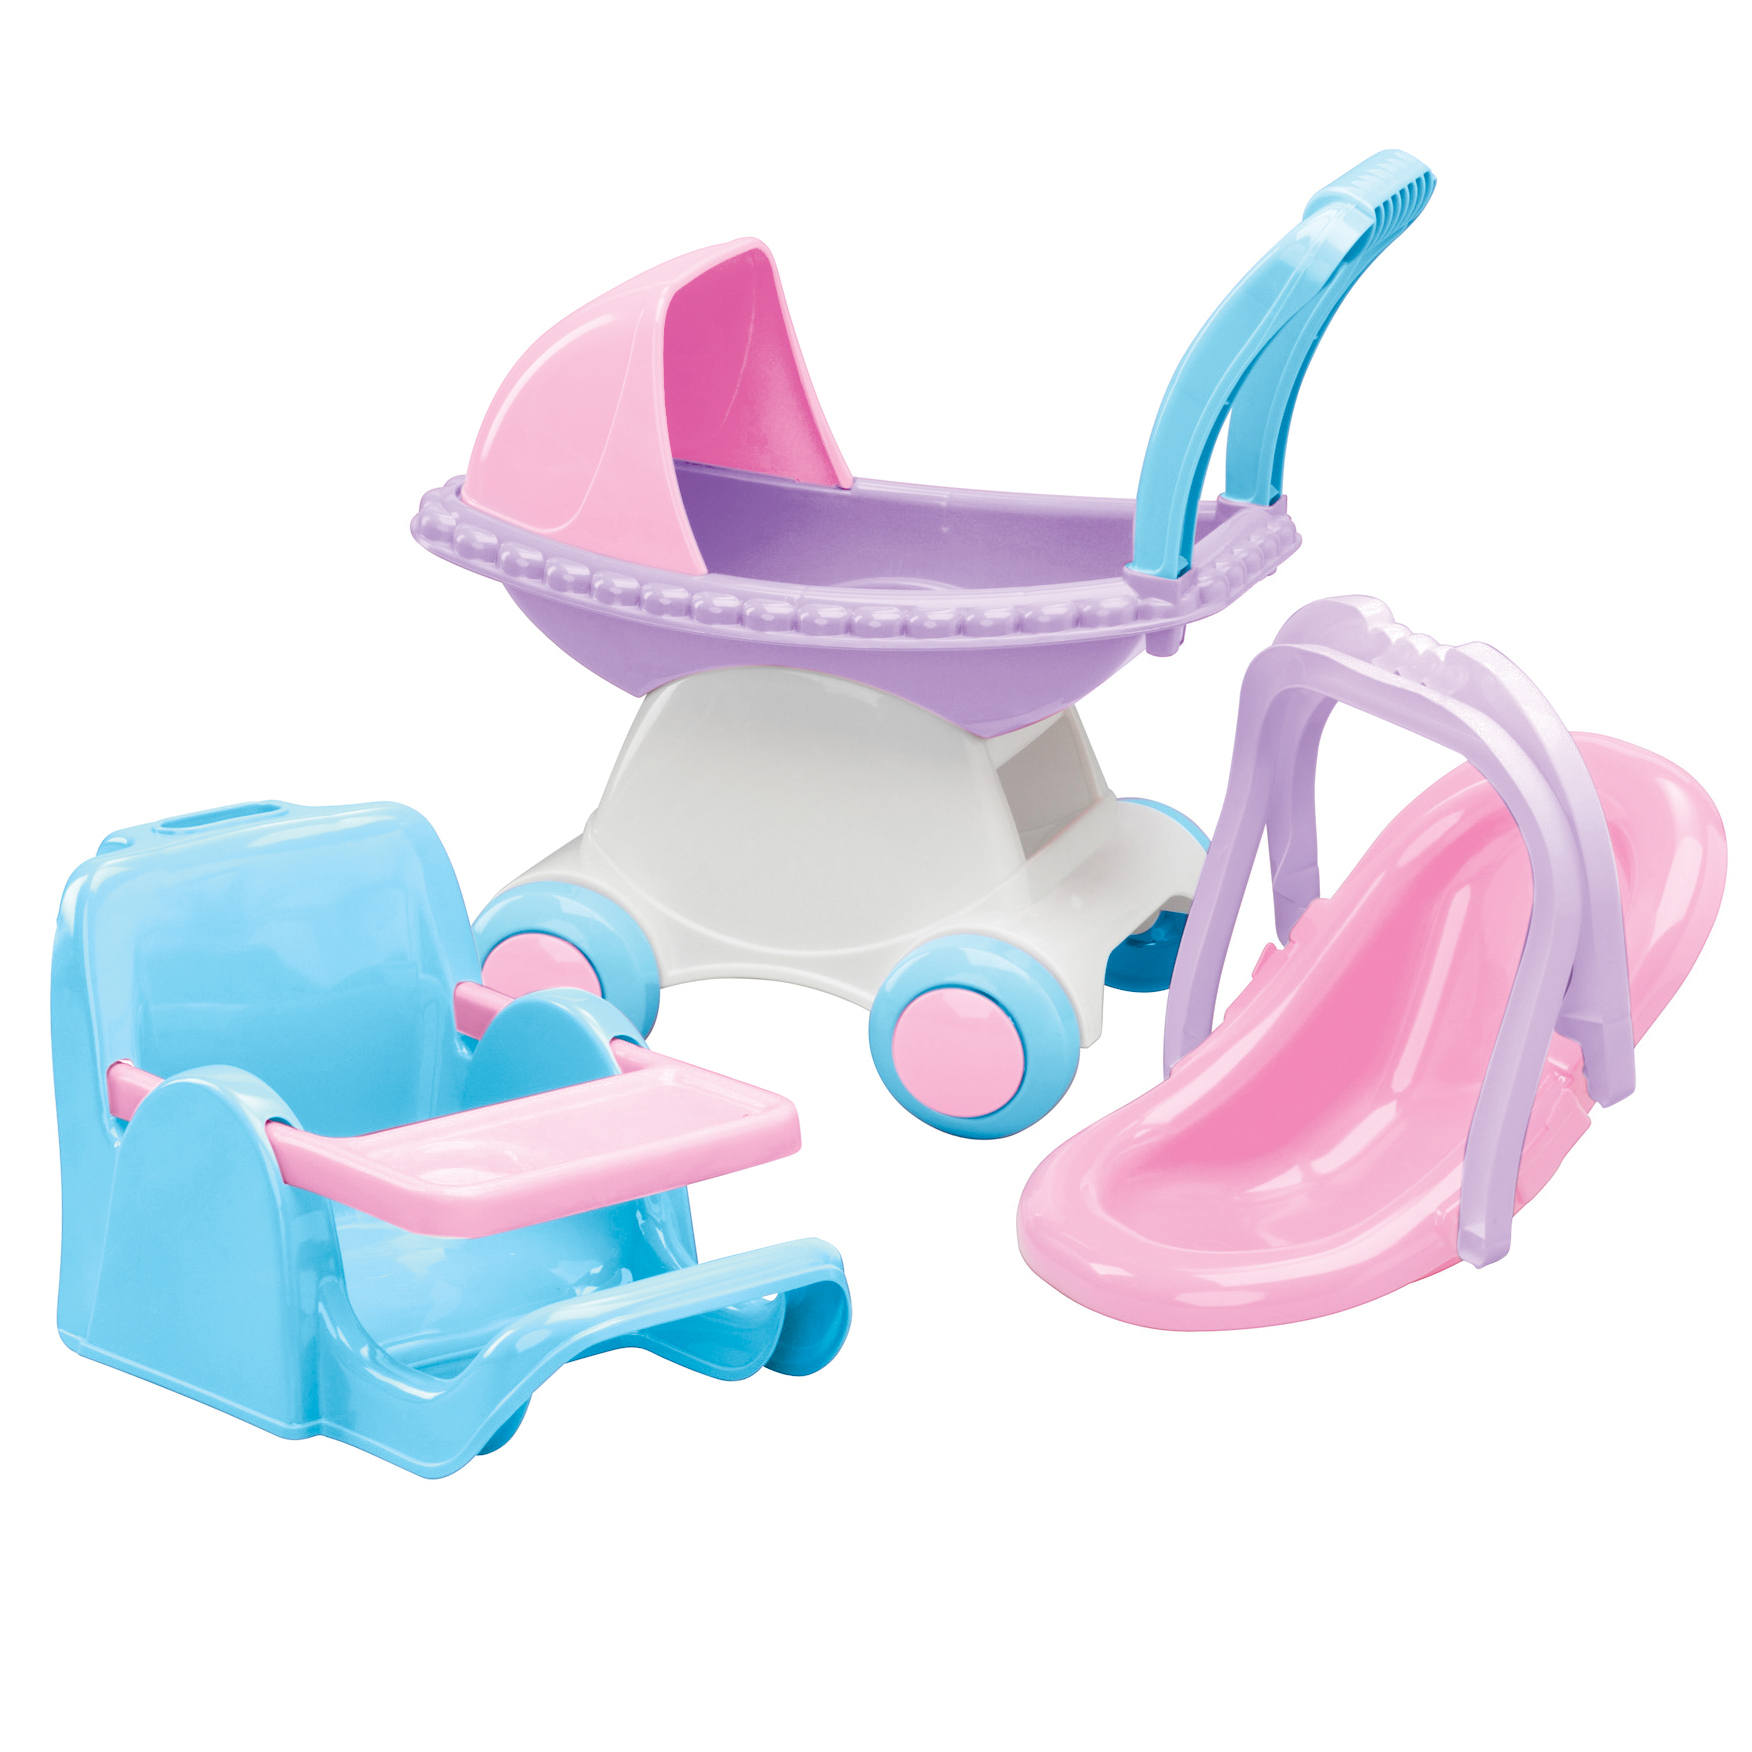 American Plastic Toys My Doll 3-Piece Play Set